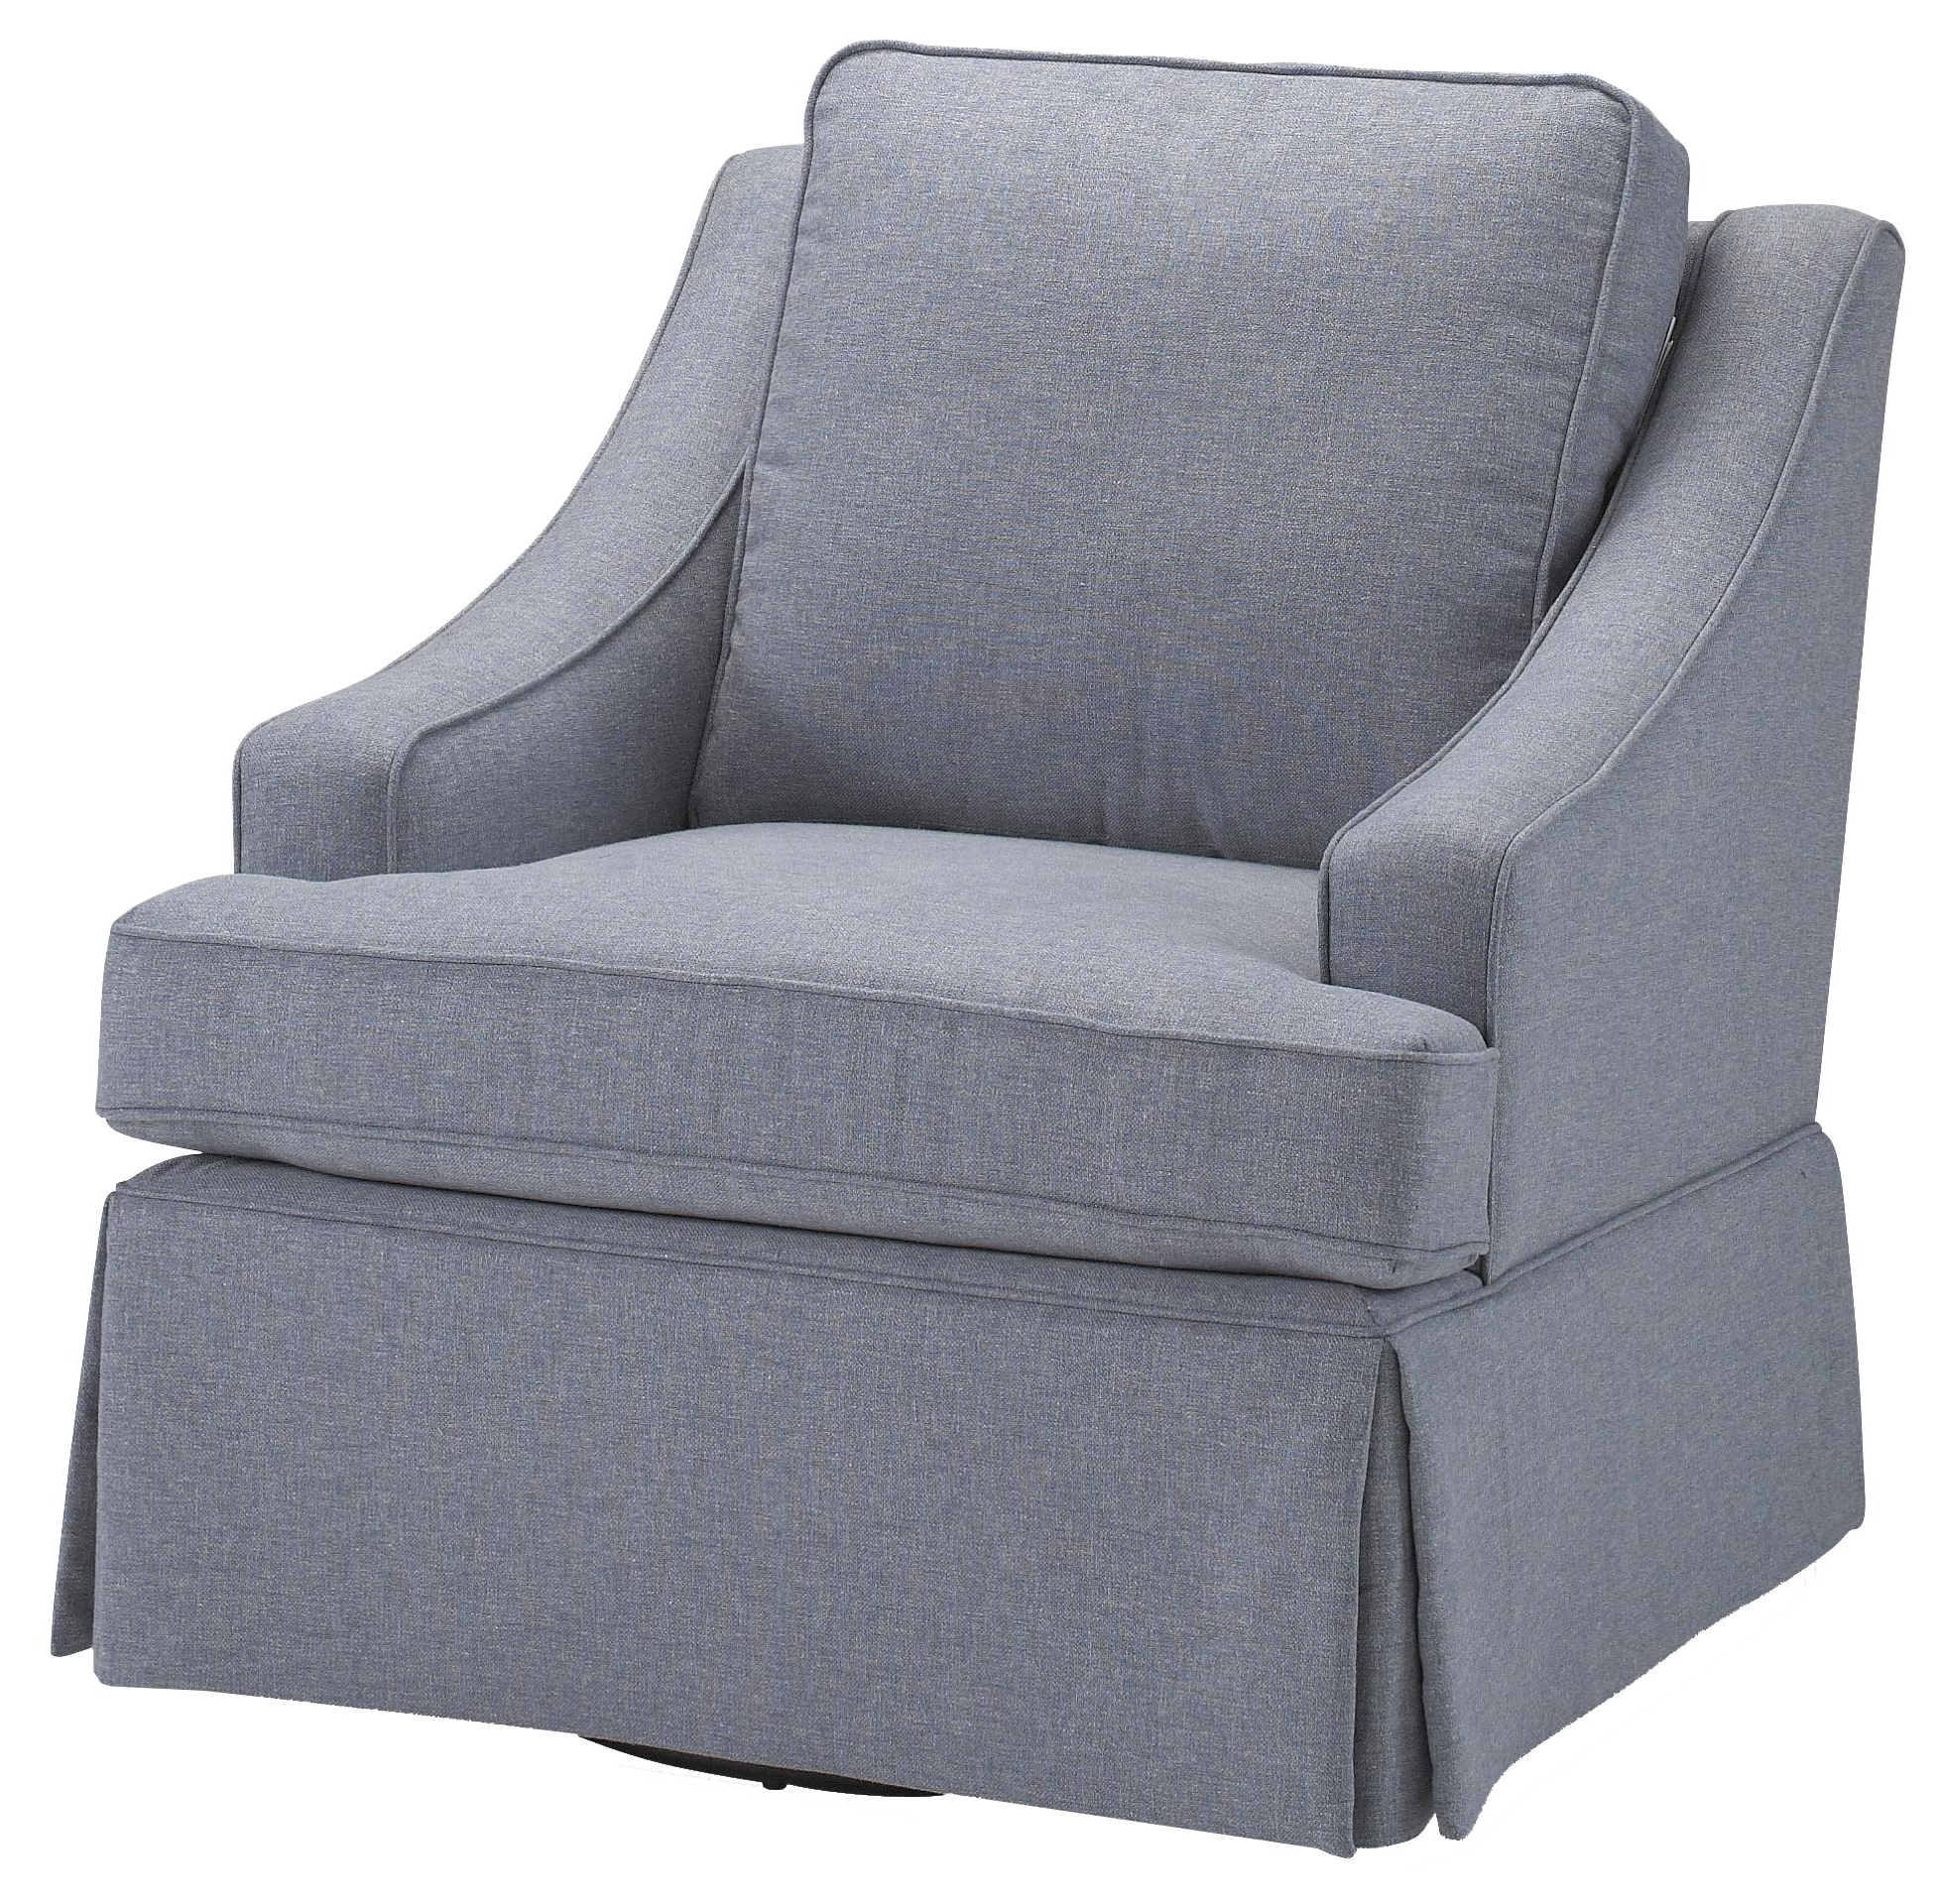 Most Recent Swivel Rocking Chairs With Contemporary Ayla Swivel Rocker Chairbest Home Furnishings (View 6 of 20)